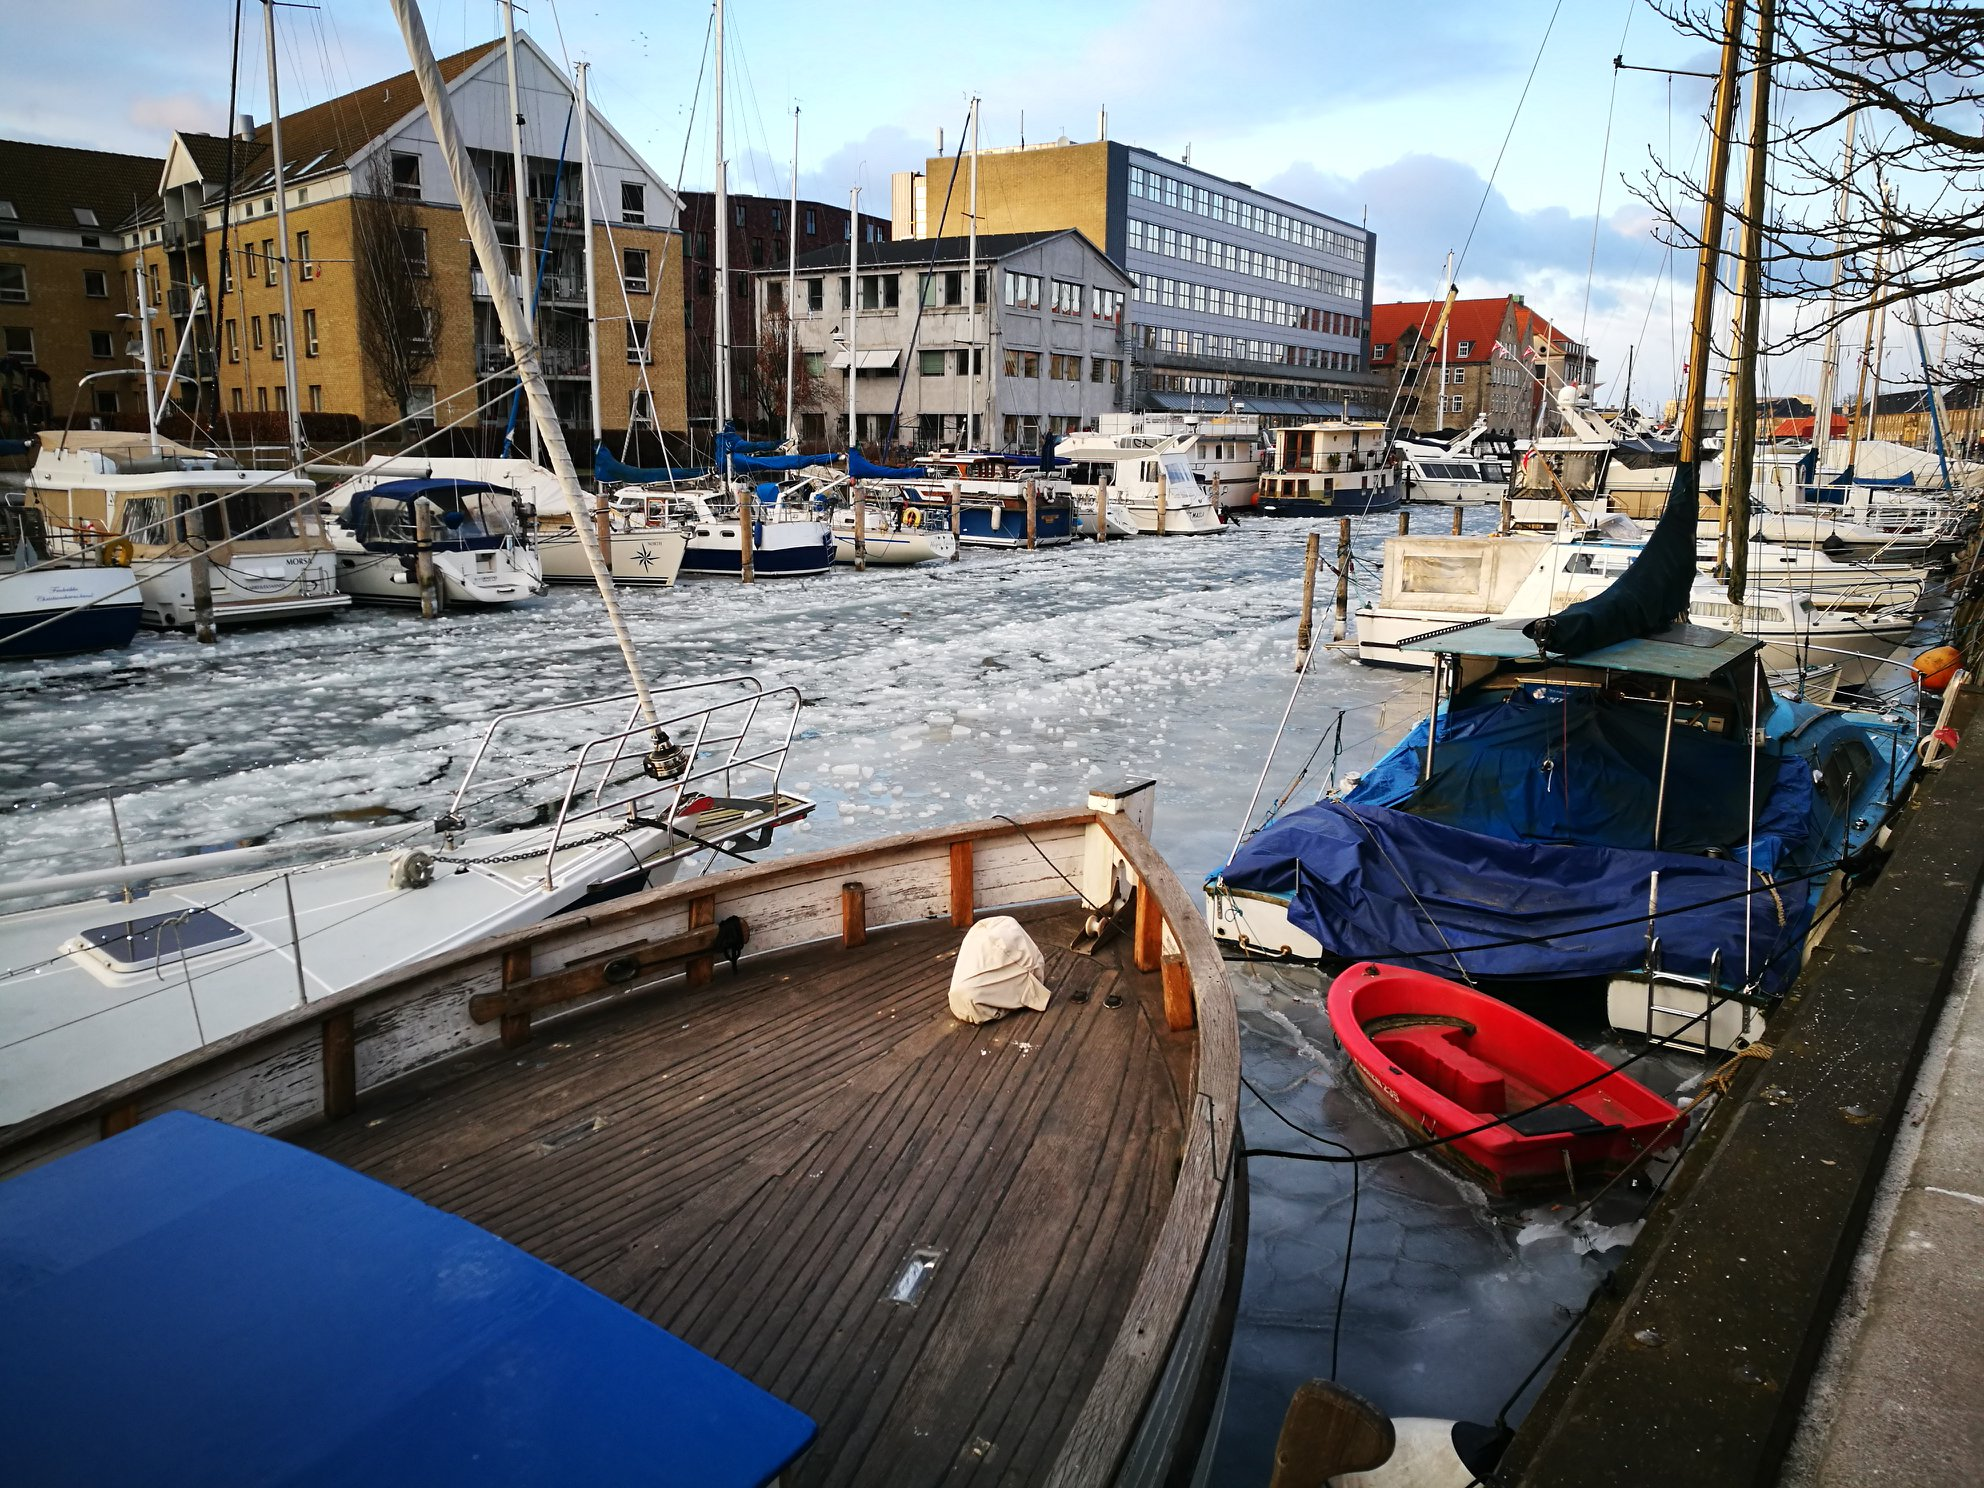 Copenhagen by winter